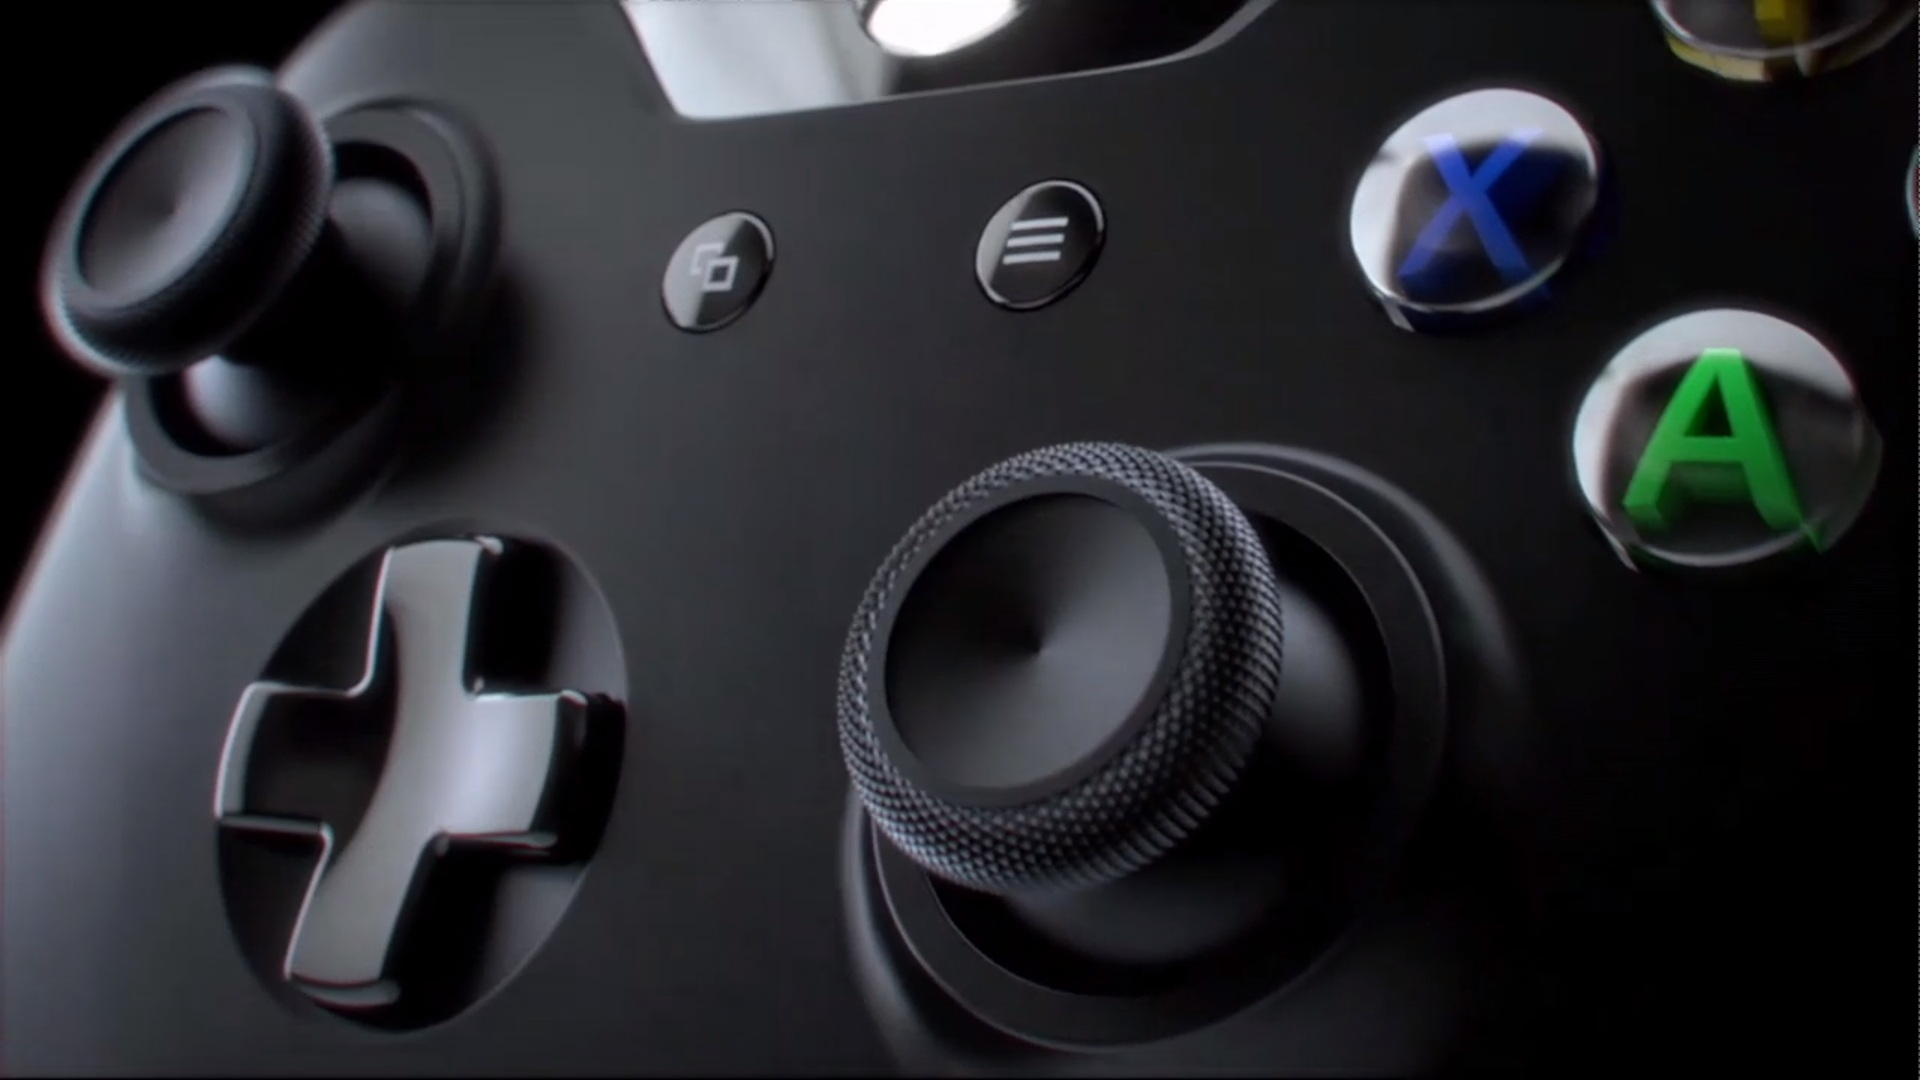 Xbox One HD Images 1920x1080